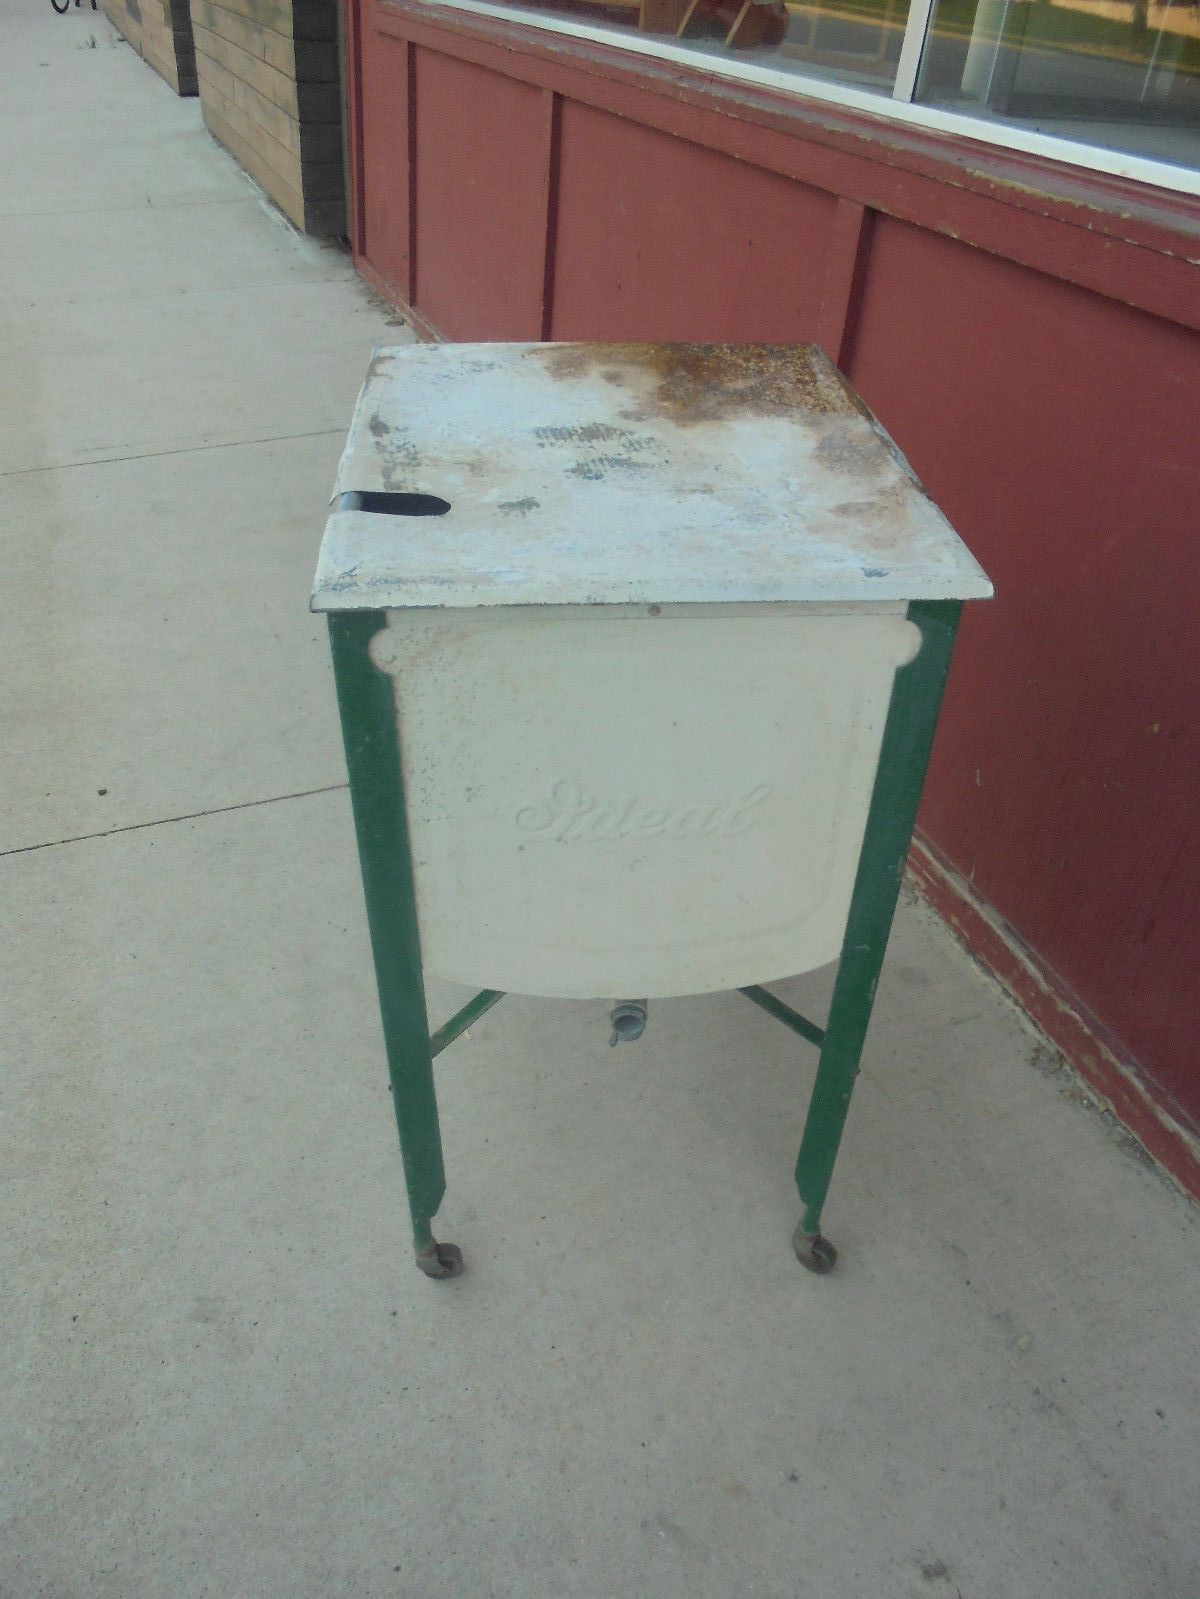 Vintage Ideal Square Wash Tub On Stand With Metal Lid Cooler Flower Decor Wash Tubs Metal Wash Tub Flower Decorations